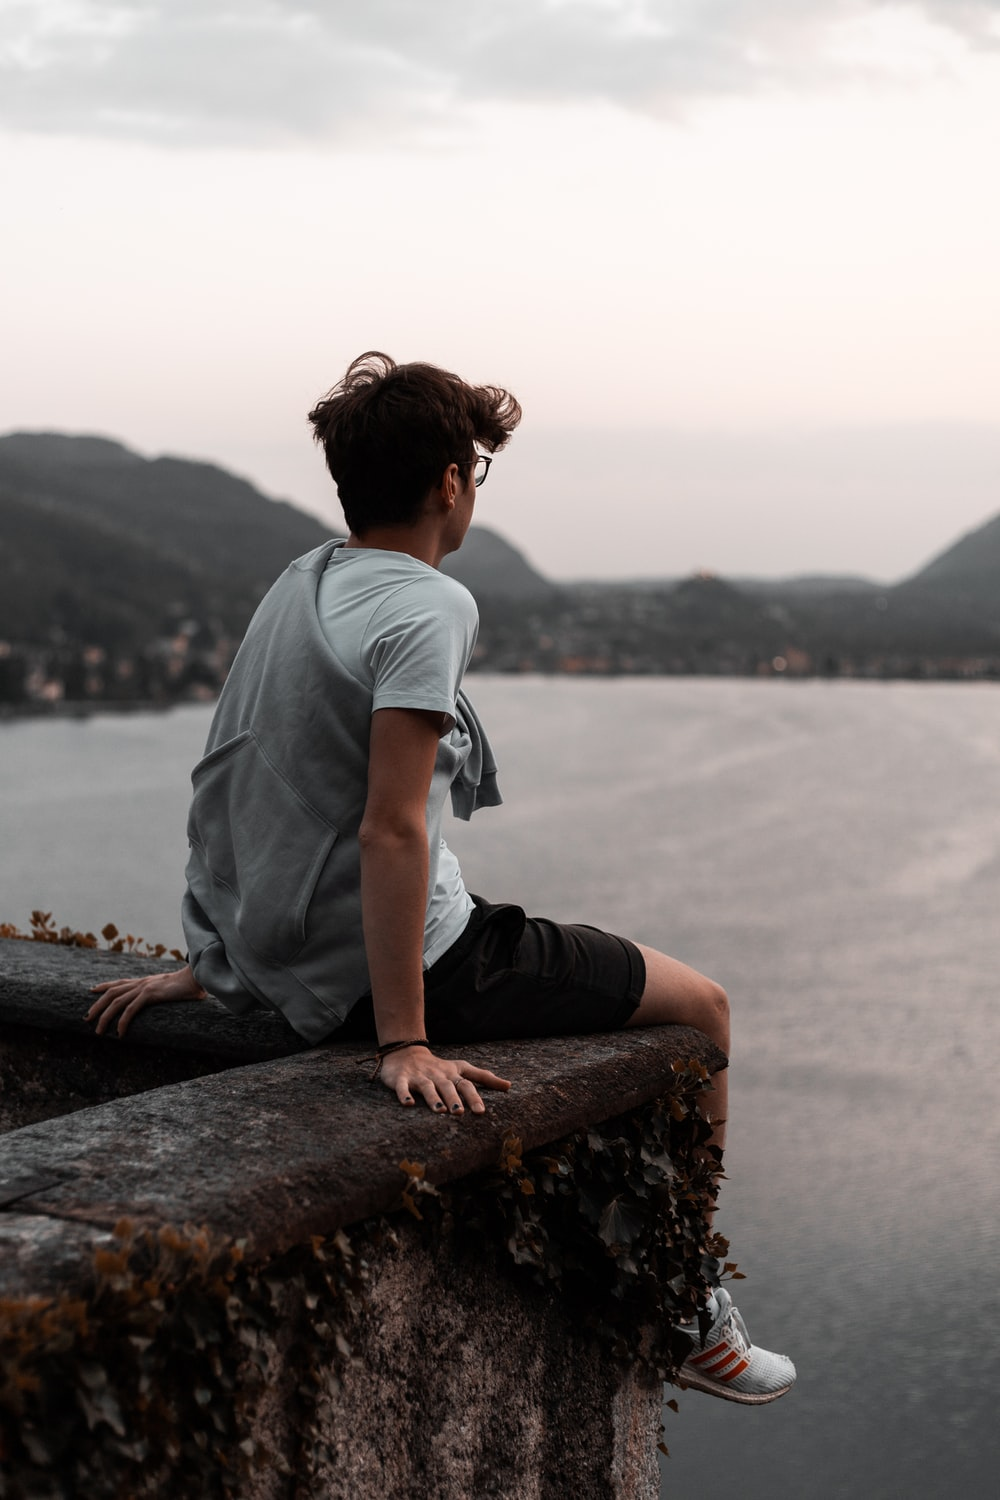 man in grey t-shirt and black pants sitting on brown rock near body of water